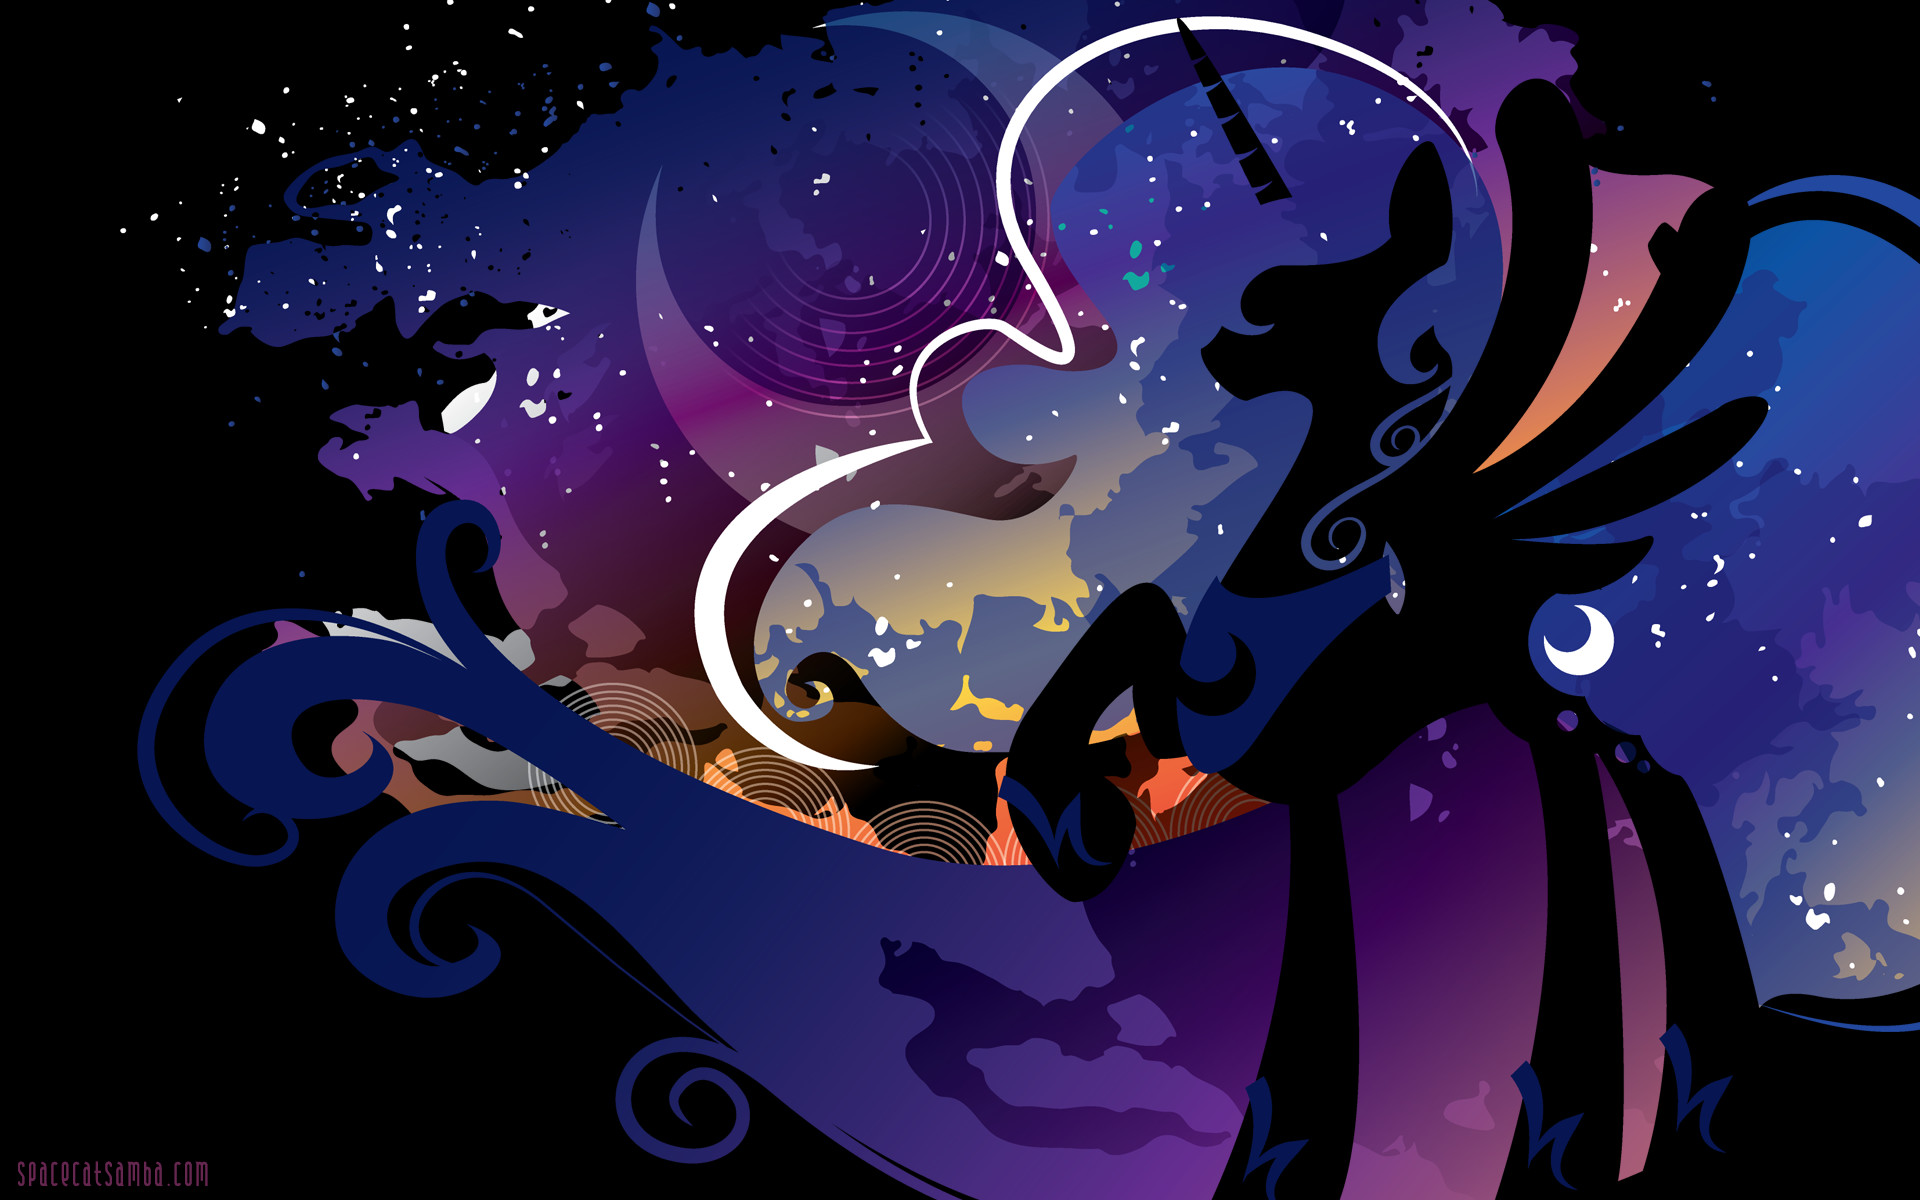 Mlp wallpapers for desktop 76 images - Princess luna screensaver ...